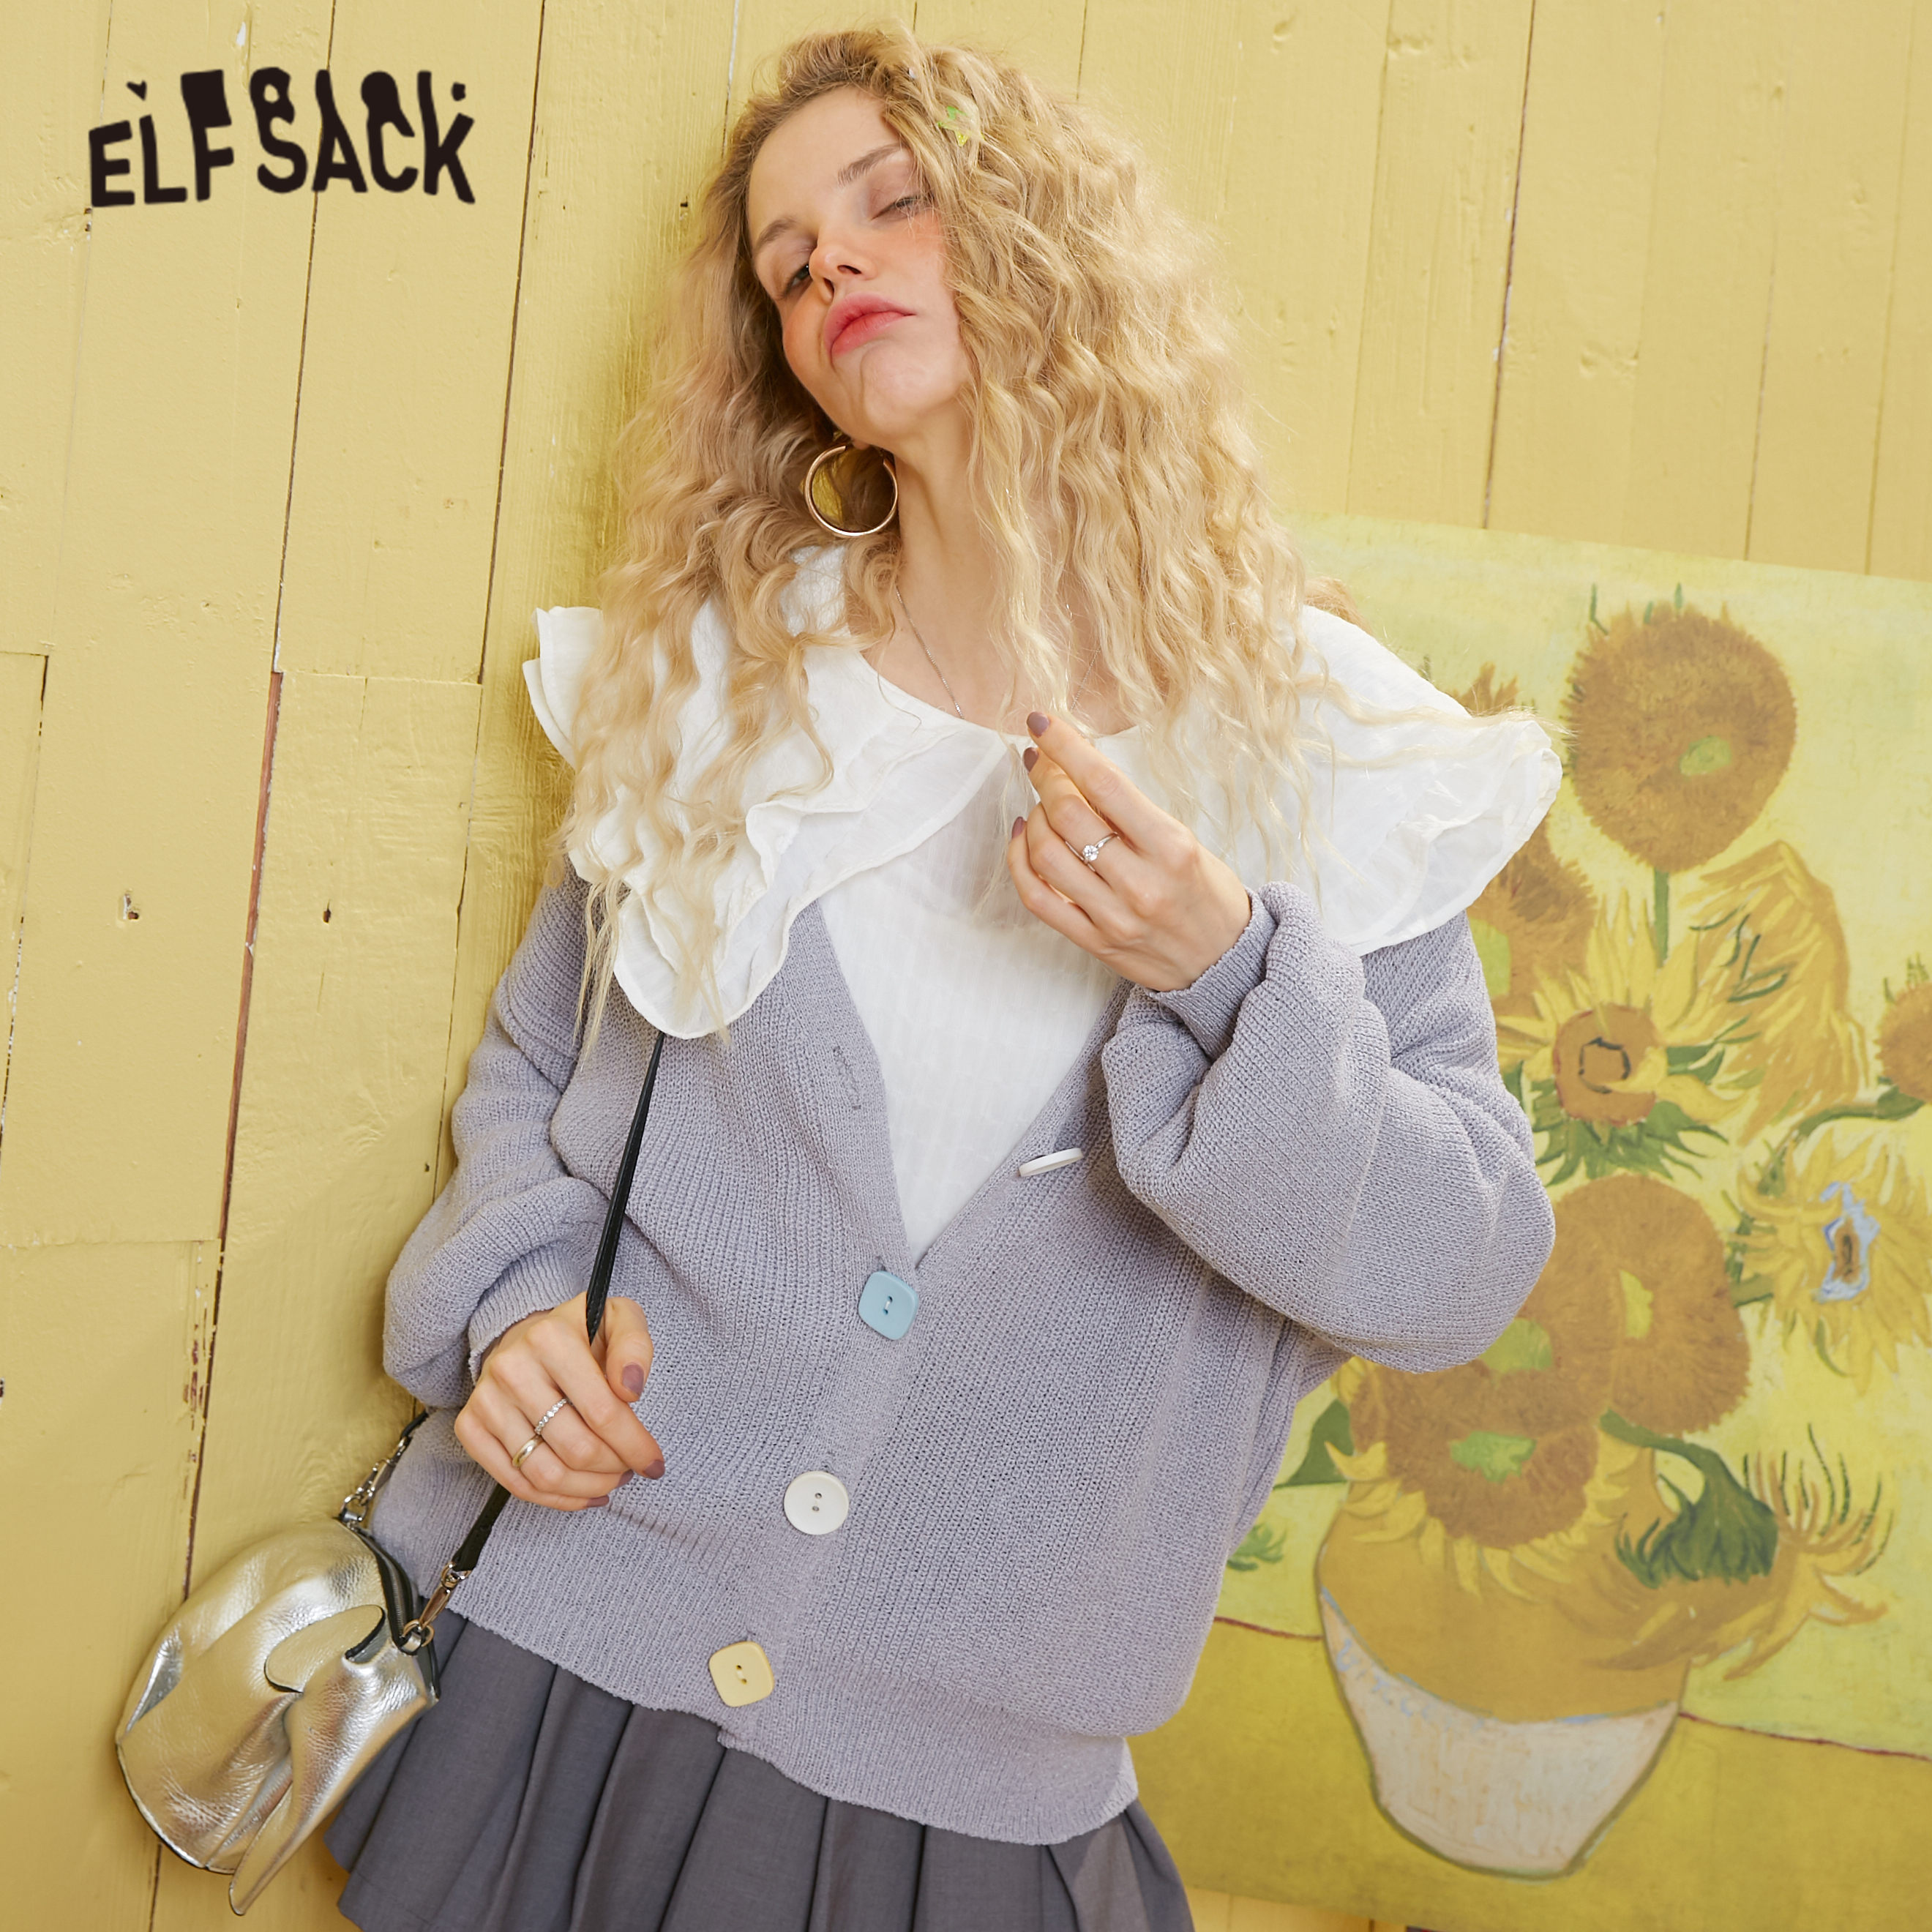 ELFSACK Multicolor Solid Minimalist Loose Casual Cardigan Women Sweaters 2020 Spring Pure Single Button Lantern Sleeve Girly Top